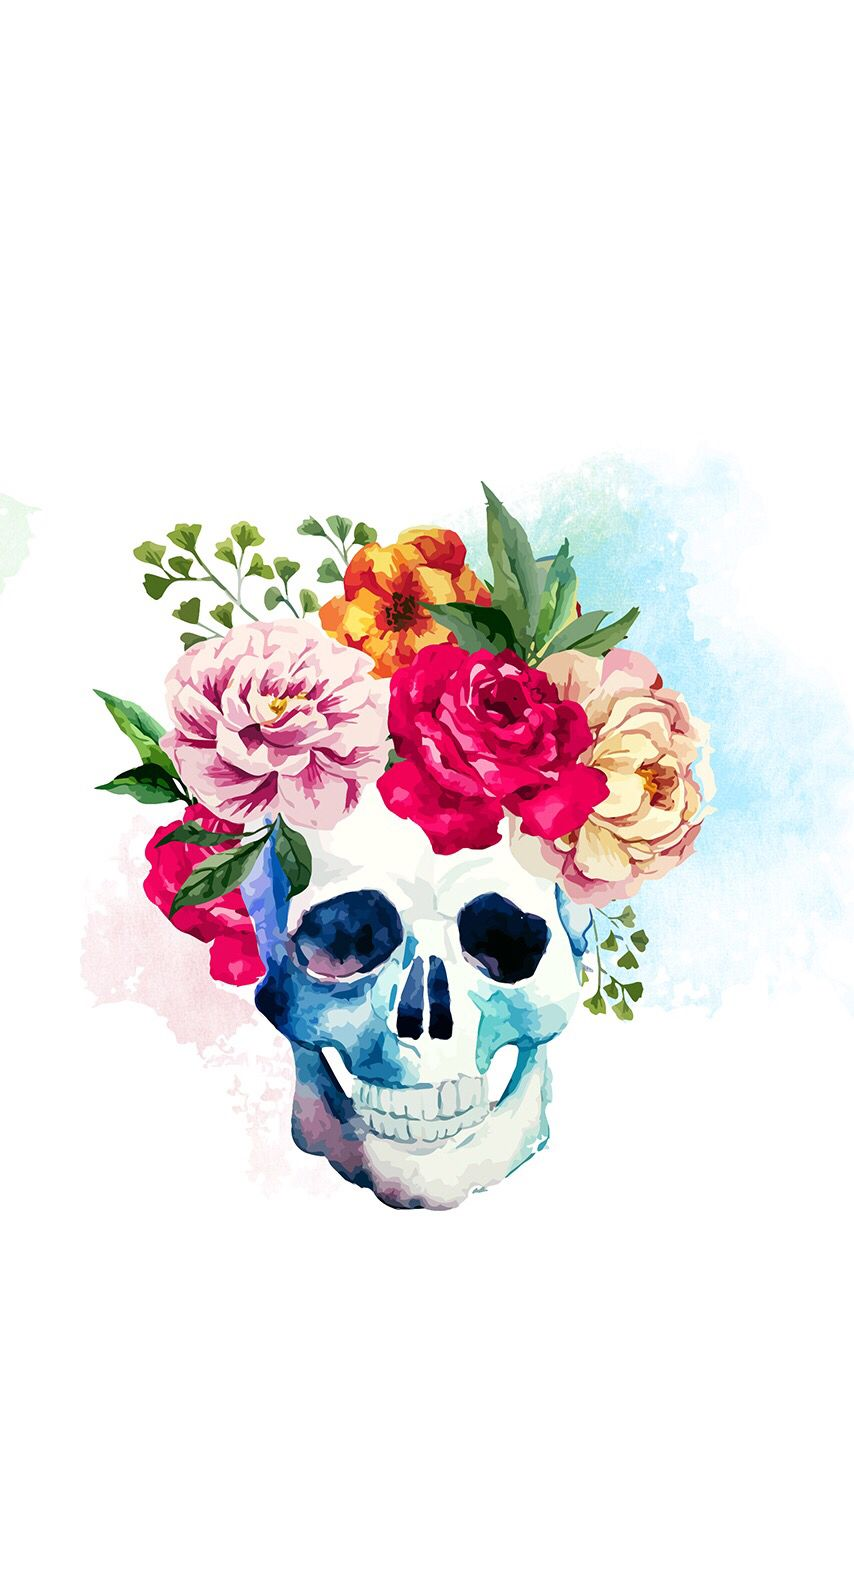 Iphone wallpaper tumblr skull - Background For Iphone 6s Plus